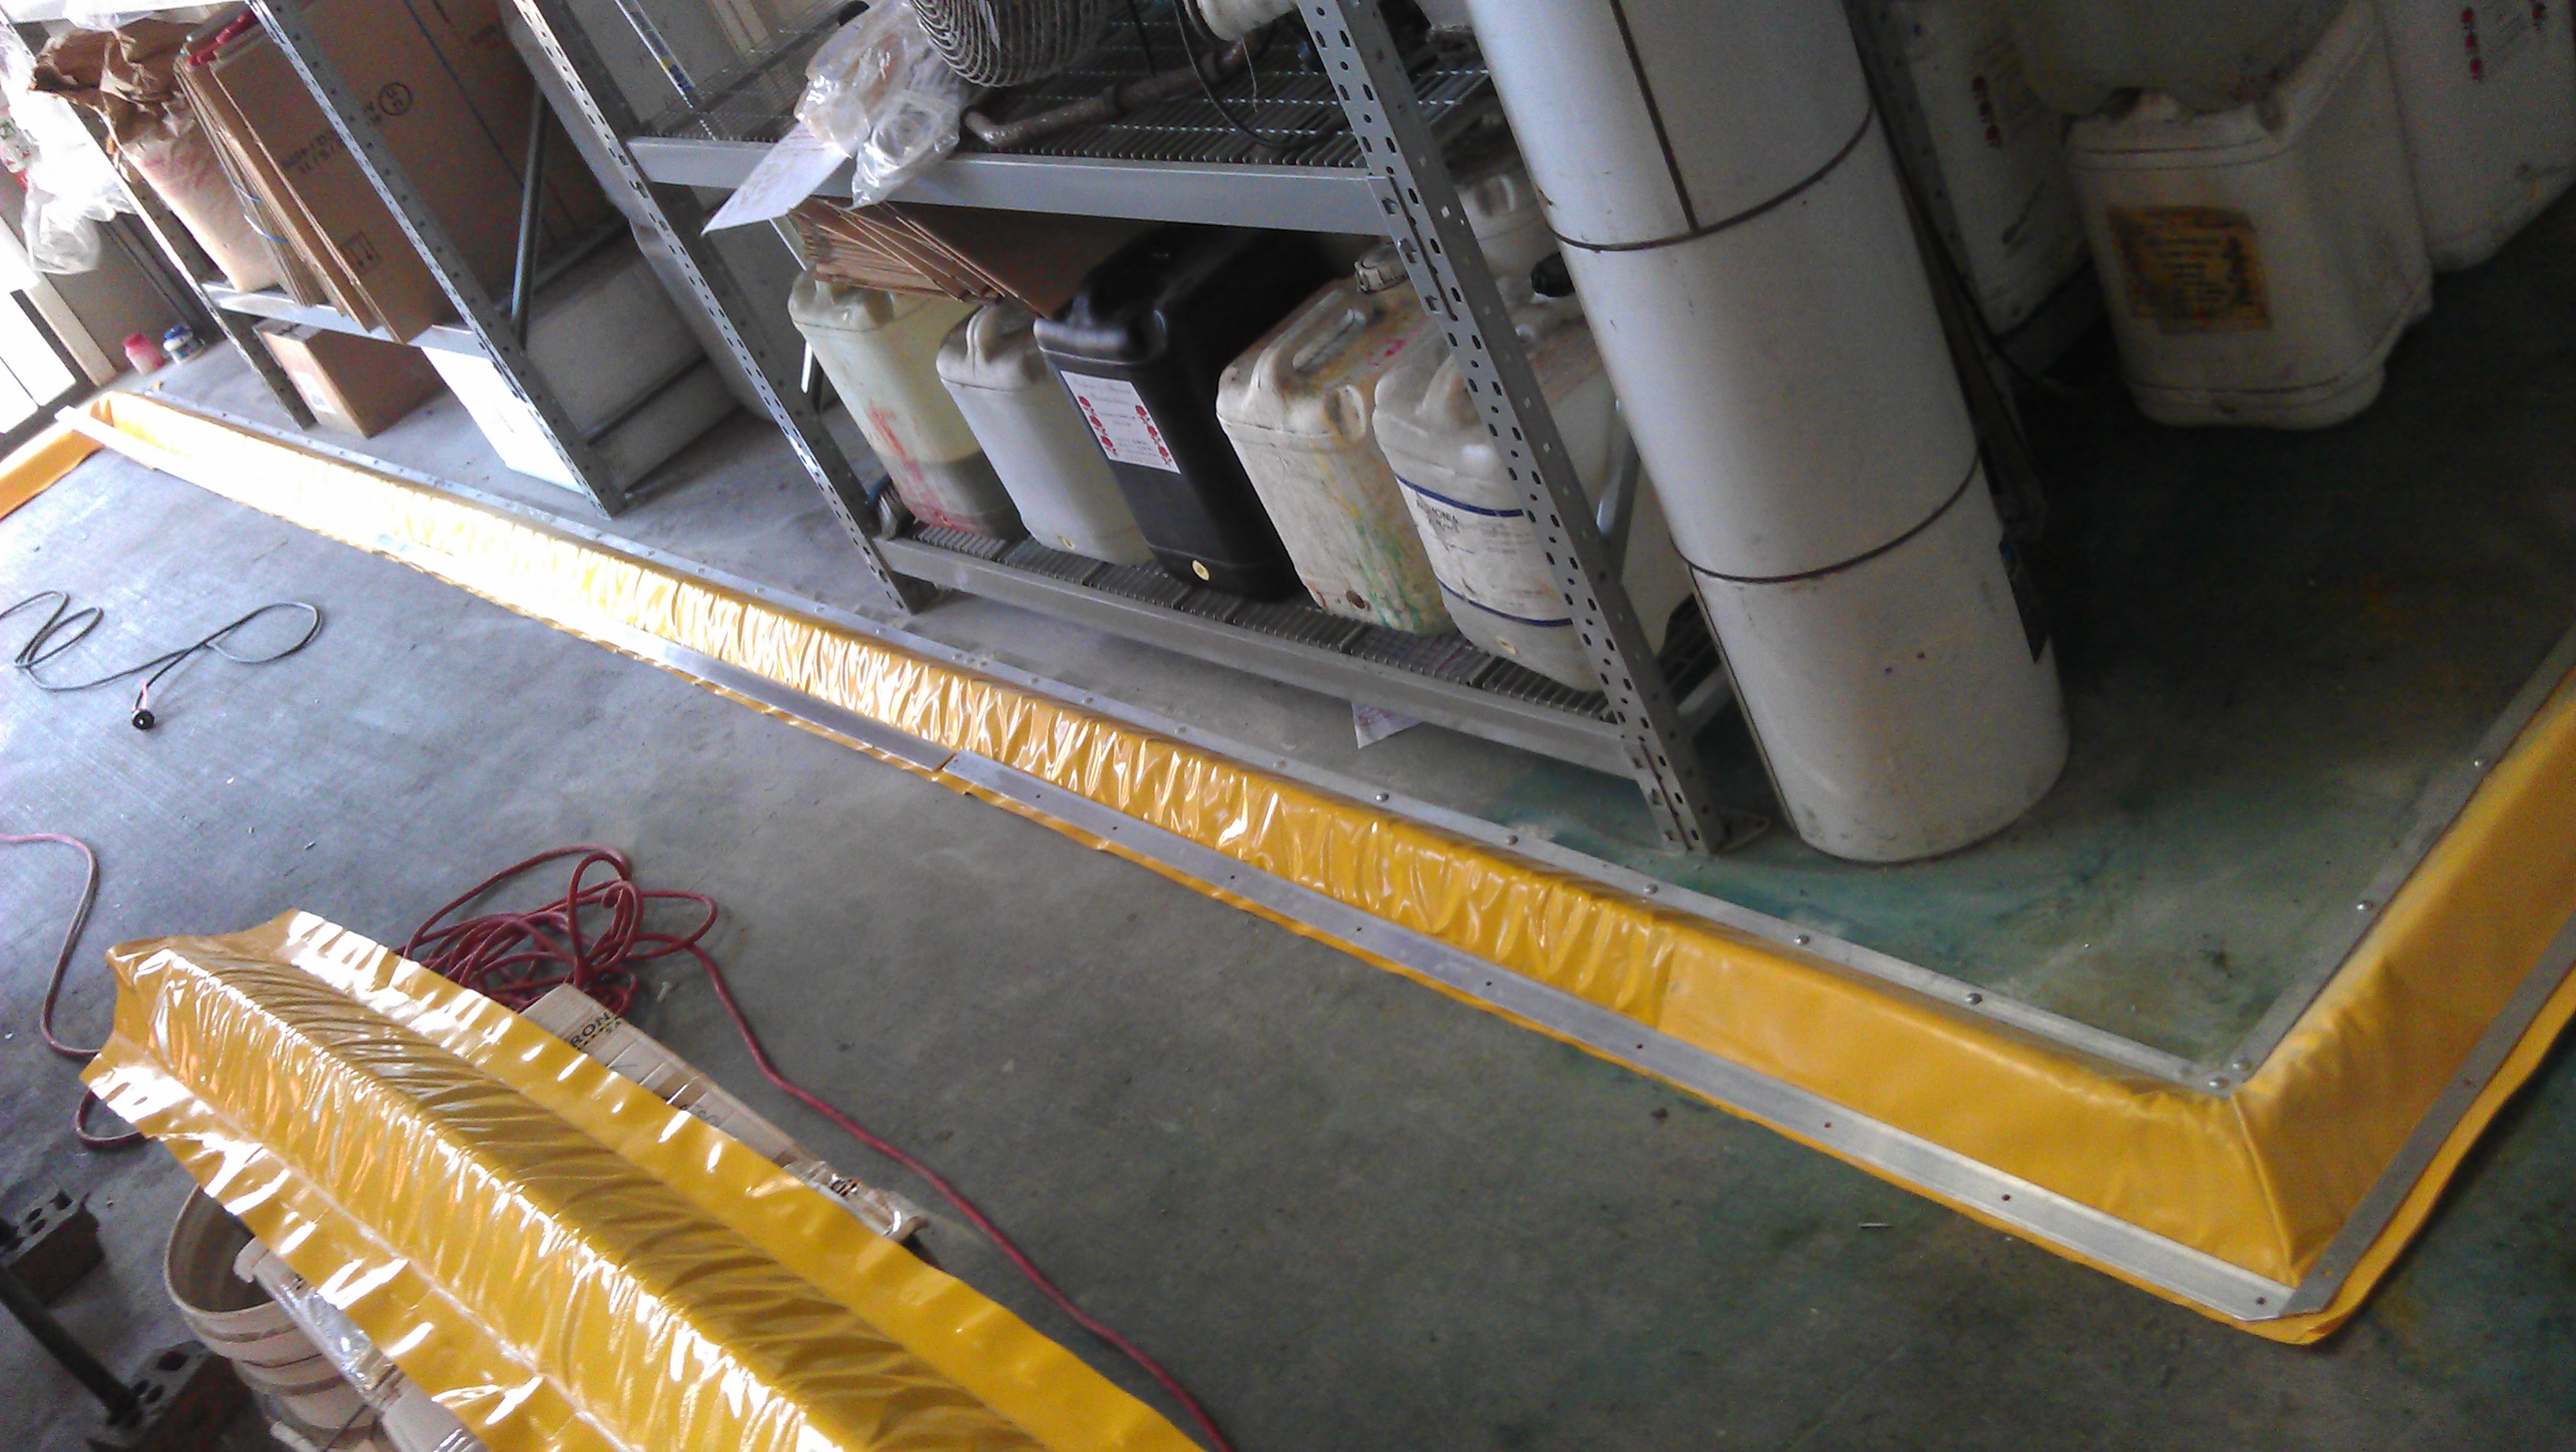 Spill Bund 101: What Bunding Does Your Workplace Require?